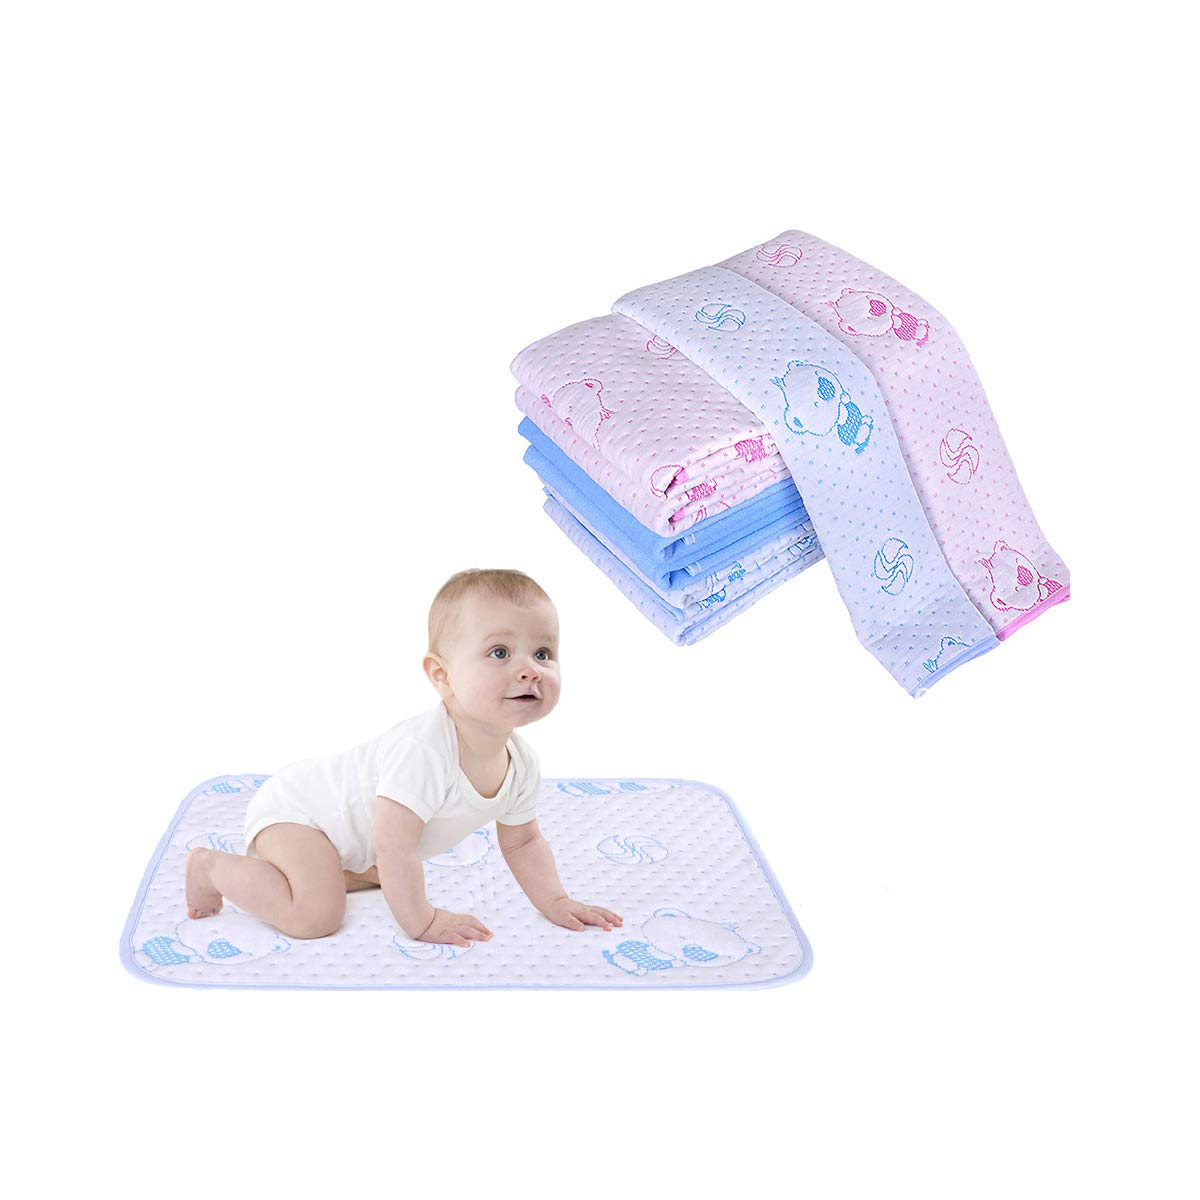 Toddler Mattress Pad, Reusable Cotton Bamboo Fiber Breathable Waterproof Baby Changing Mat Incontinence Bed Cover,19.7x27.6 Women Menstrual Period Leakproof Underpad Postpartum Protector Sheet, Pink LYTPW